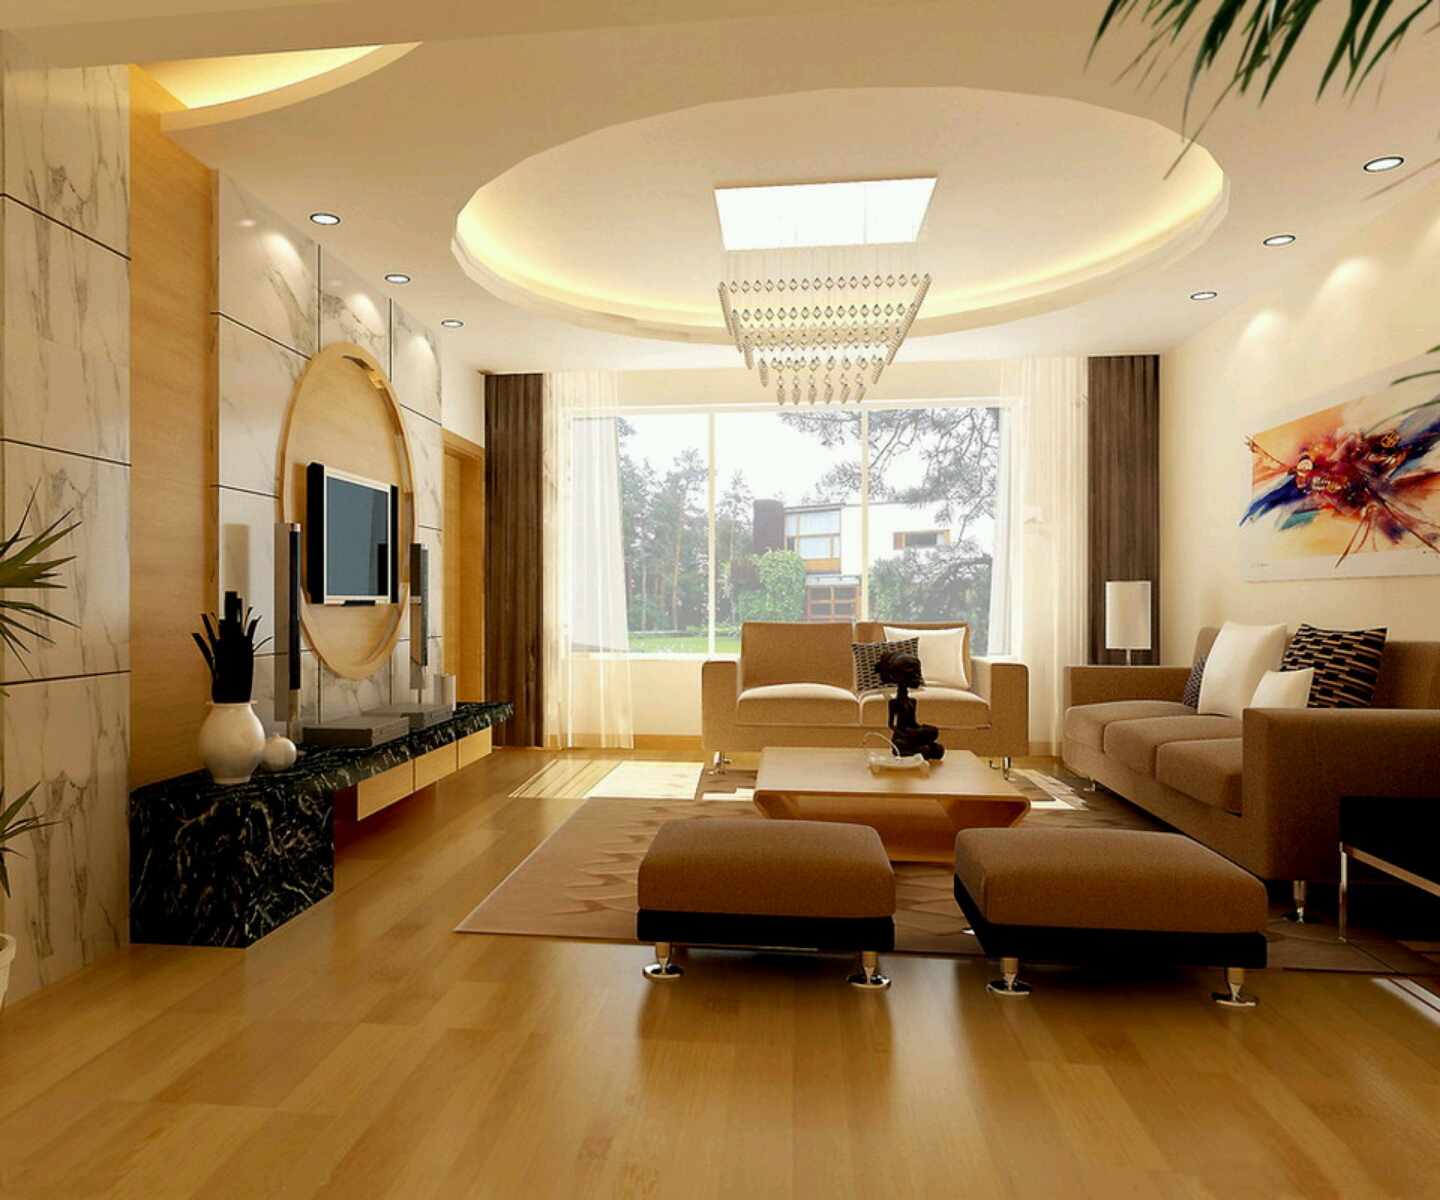 Modern interior decoration living rooms ceiling designs for Living room decor images